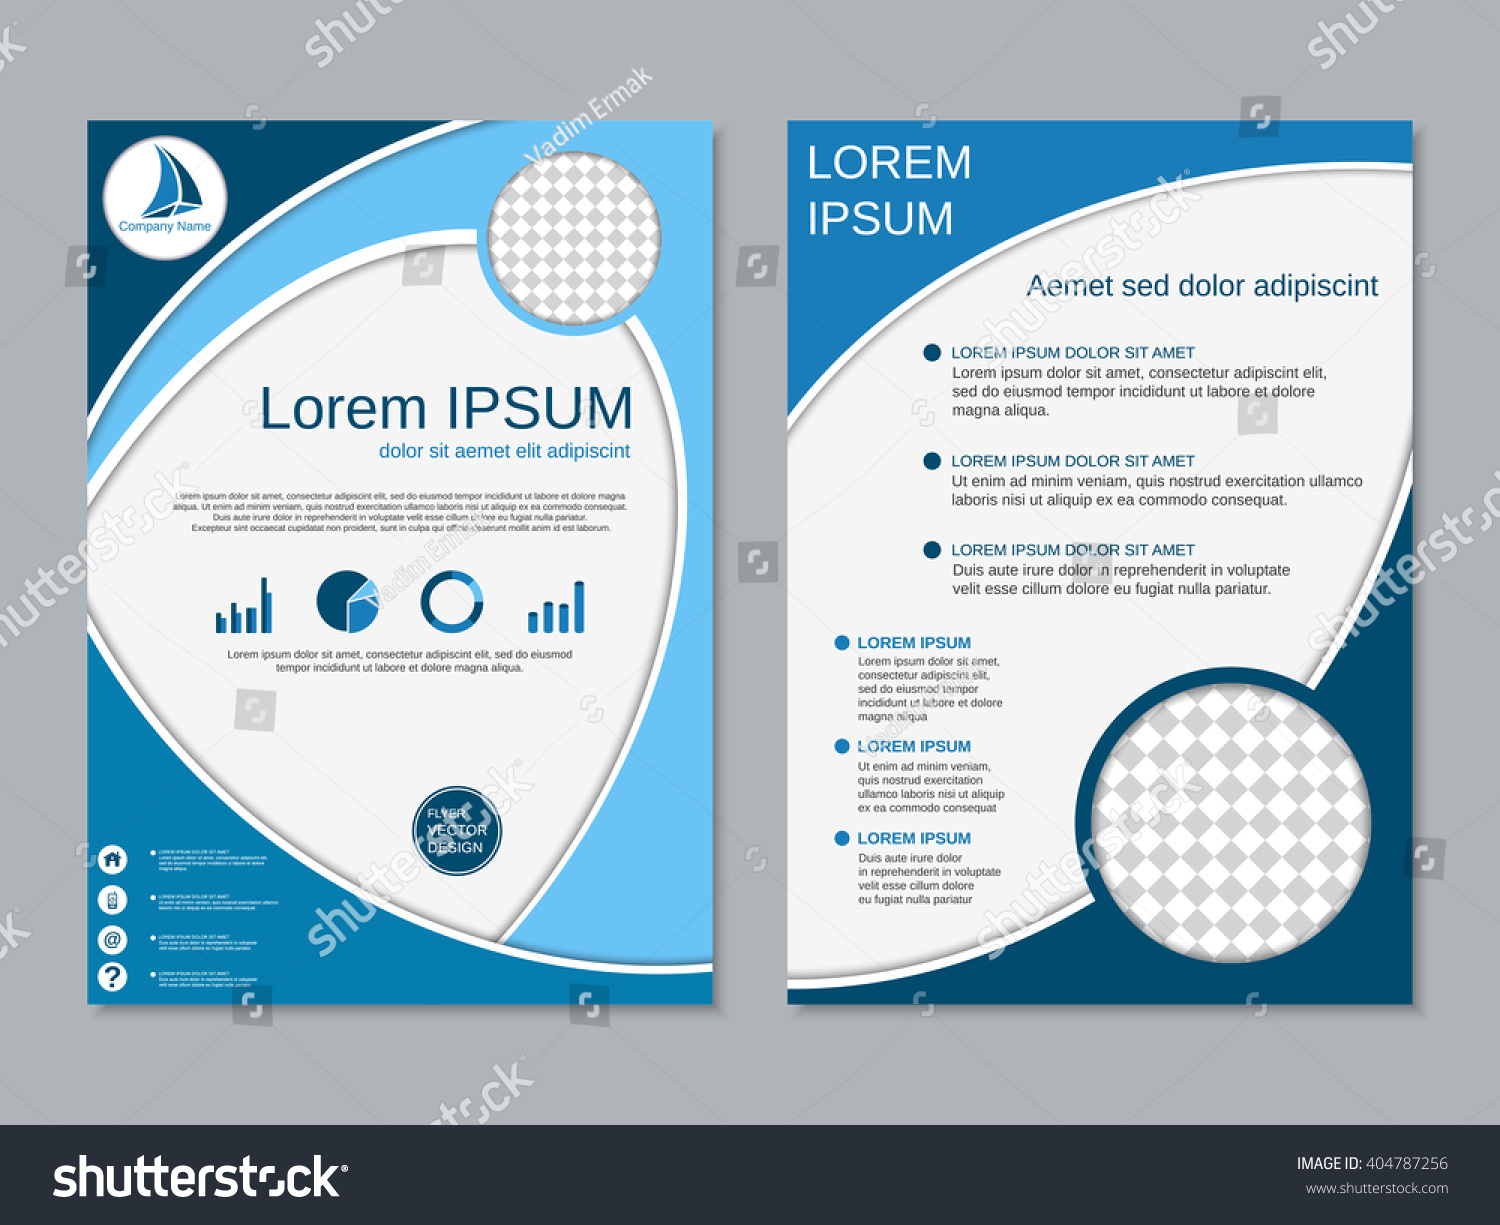 two sided brochure template - royalty free modern two sided booklet vector 404787256